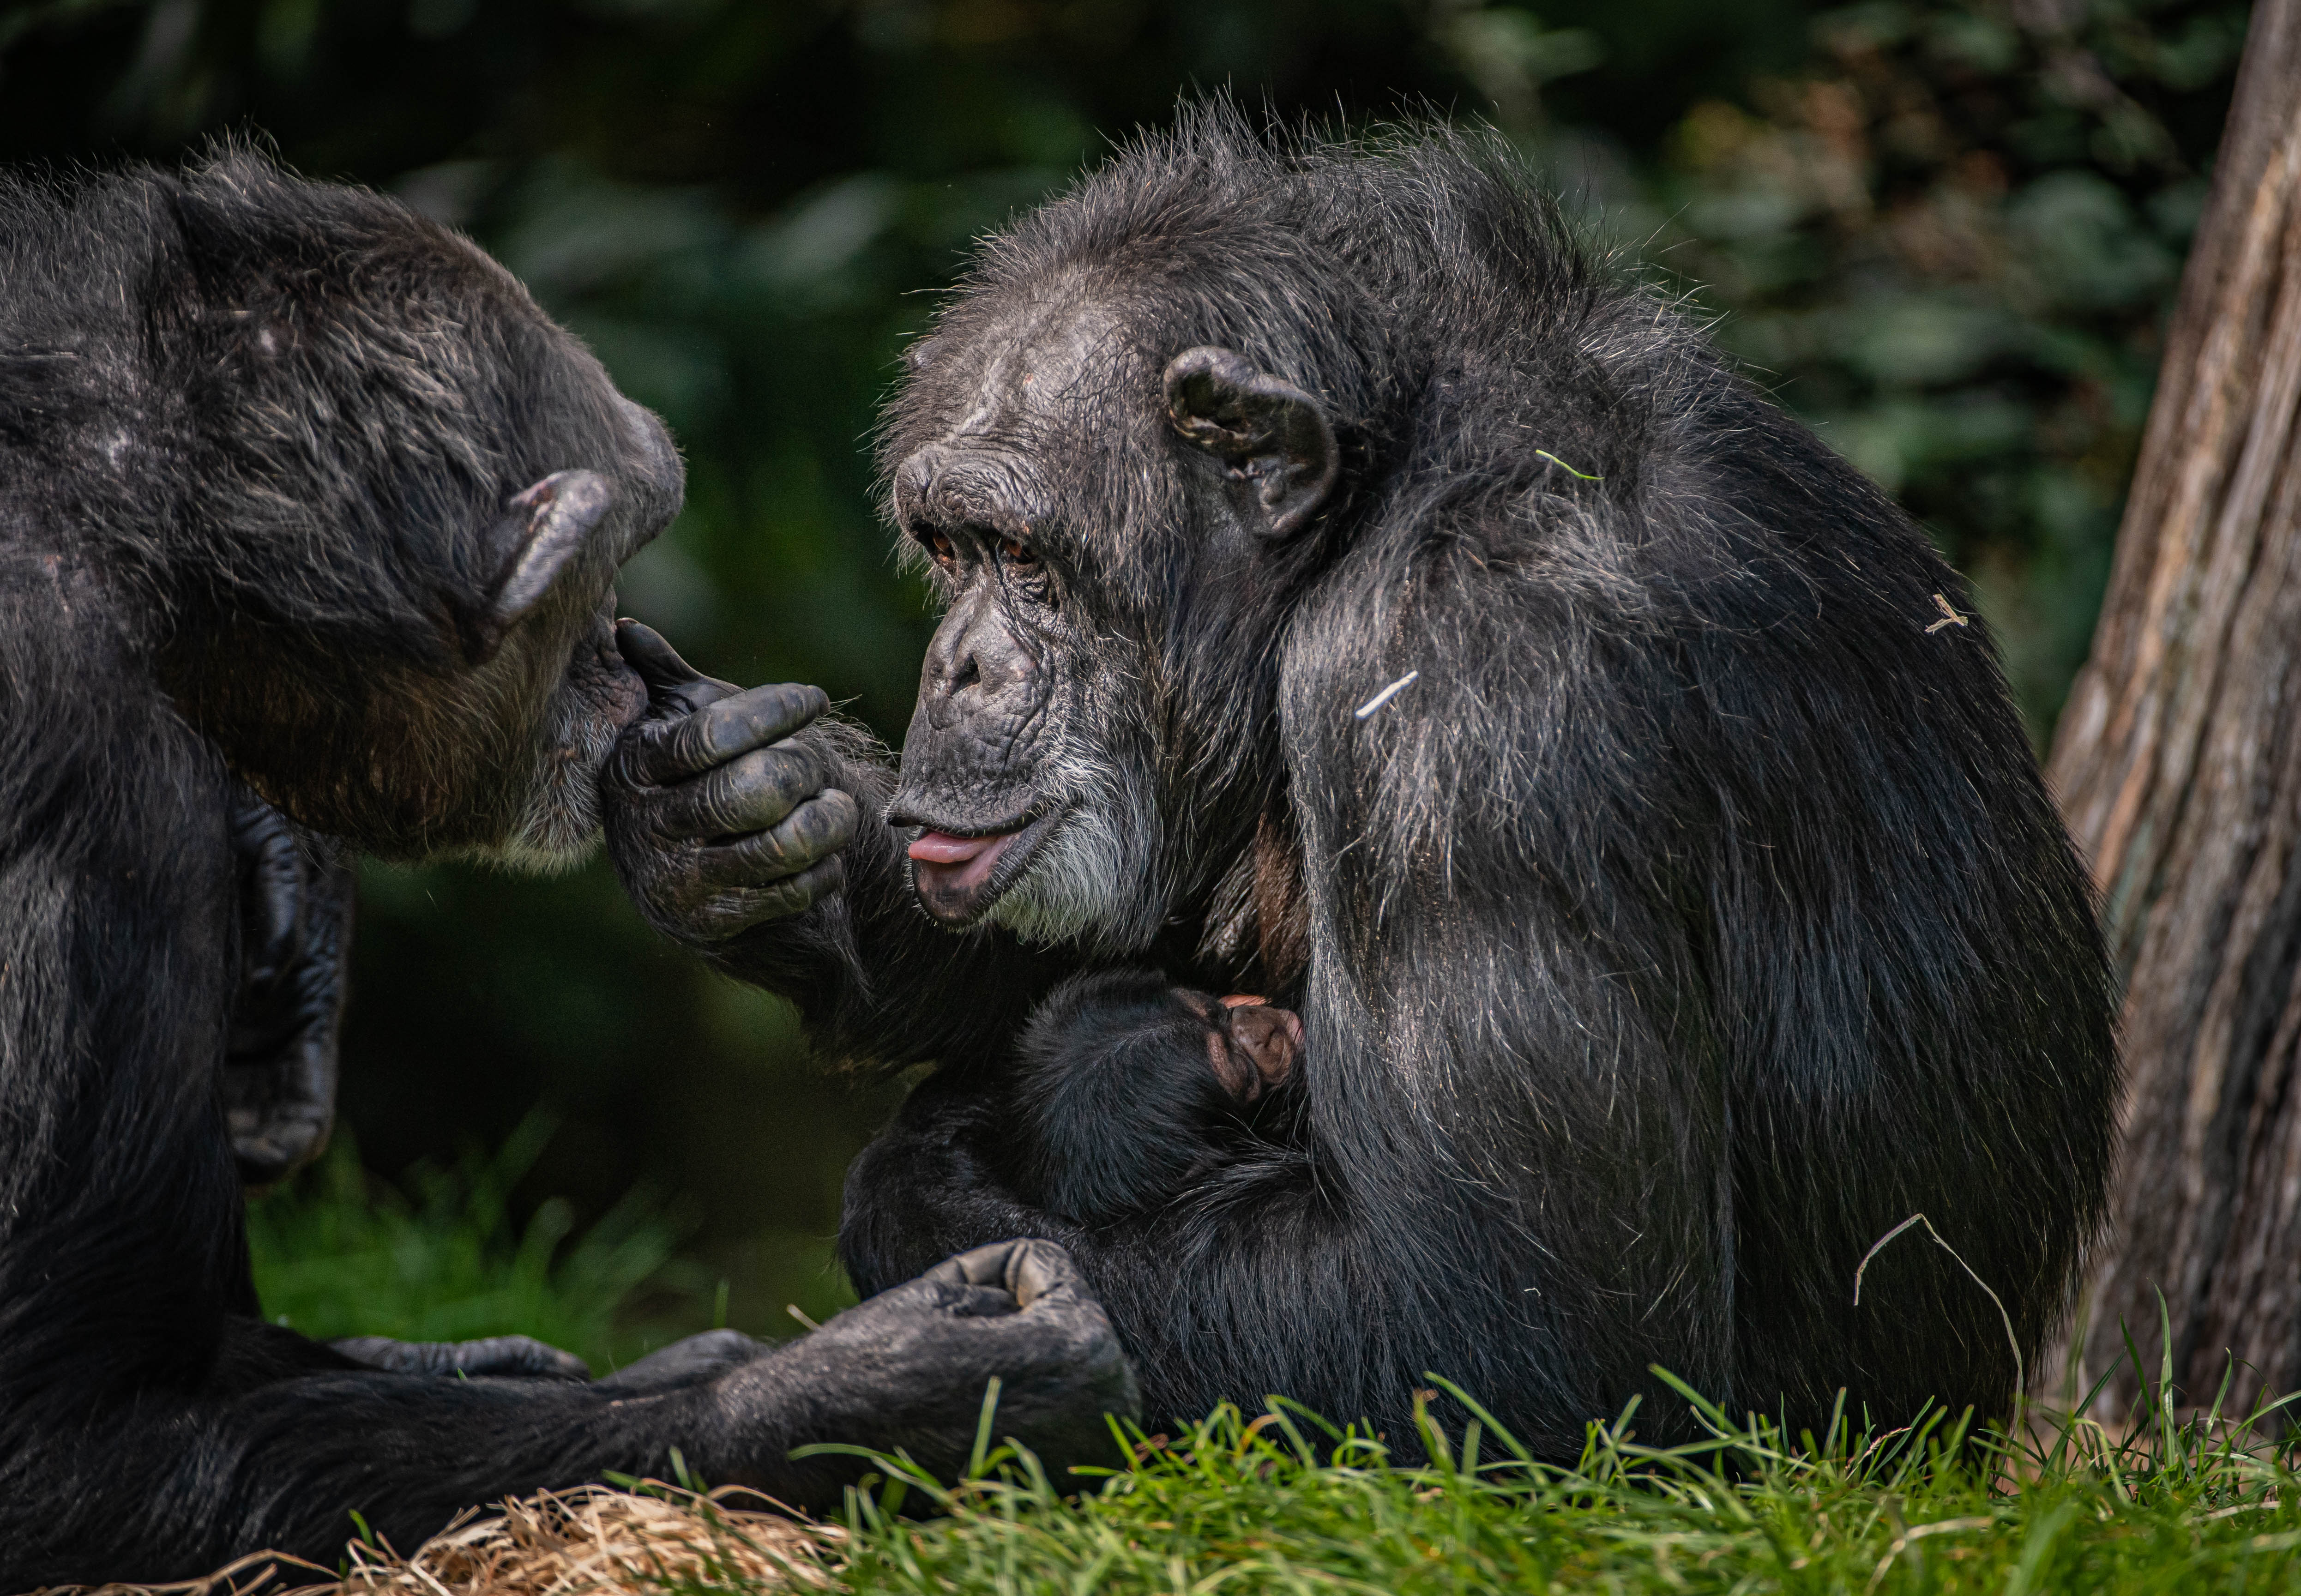 Critically endangered baby chimpanzee born at Chester Zoo